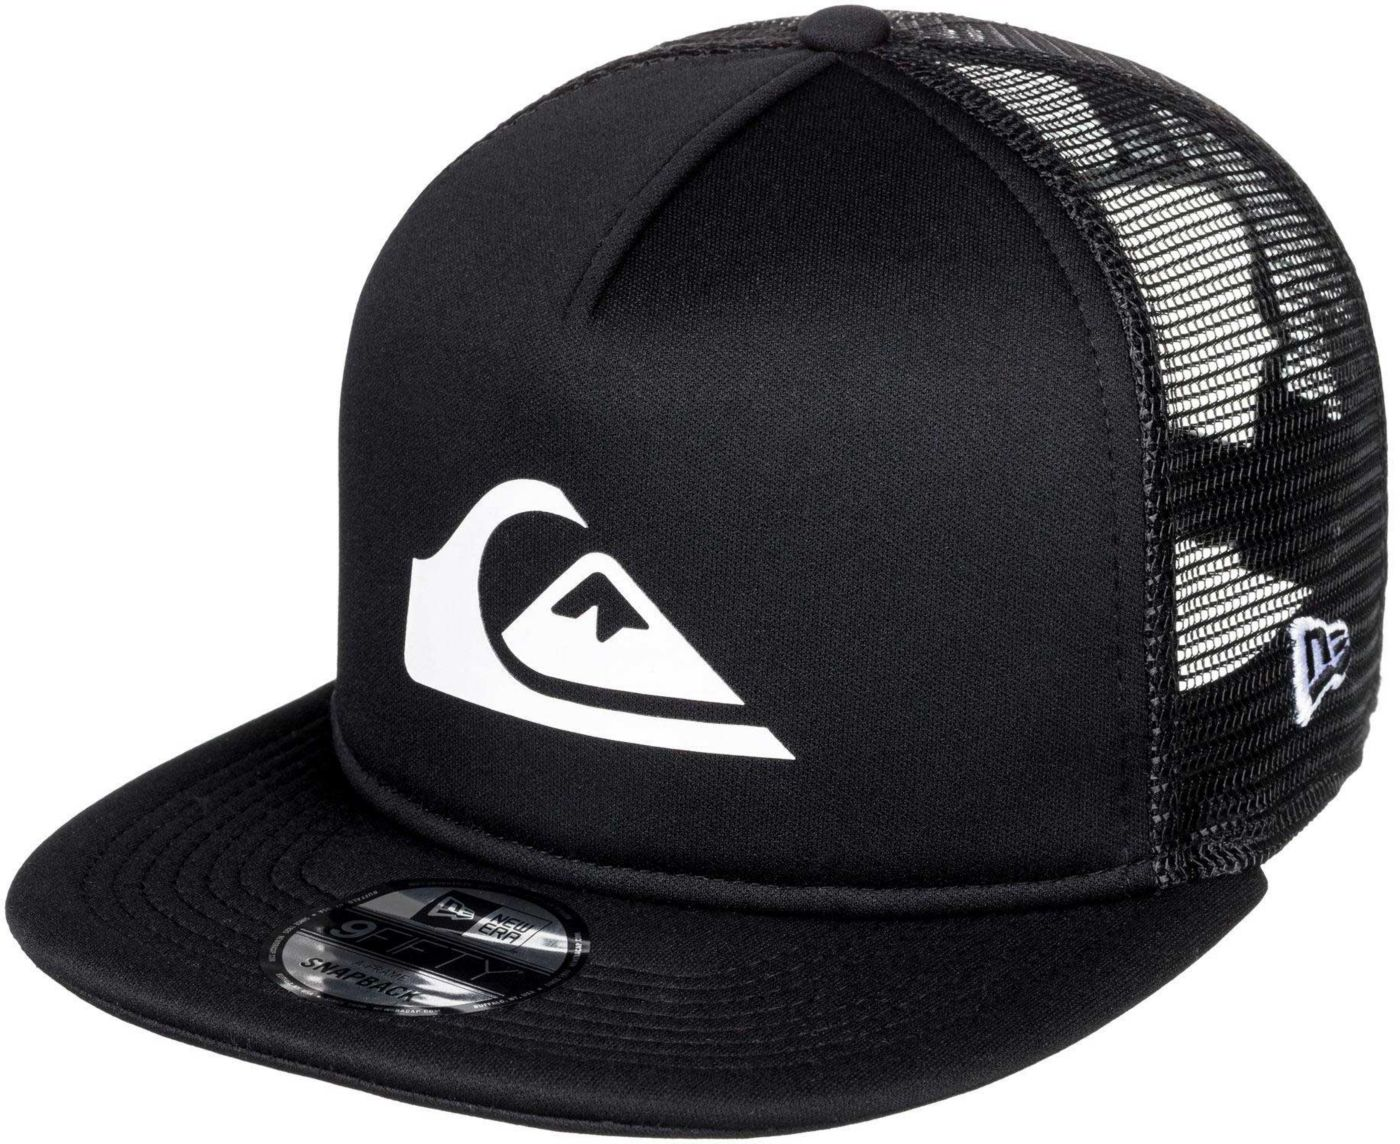 Quiksilver Men's Podium Trucker Hat